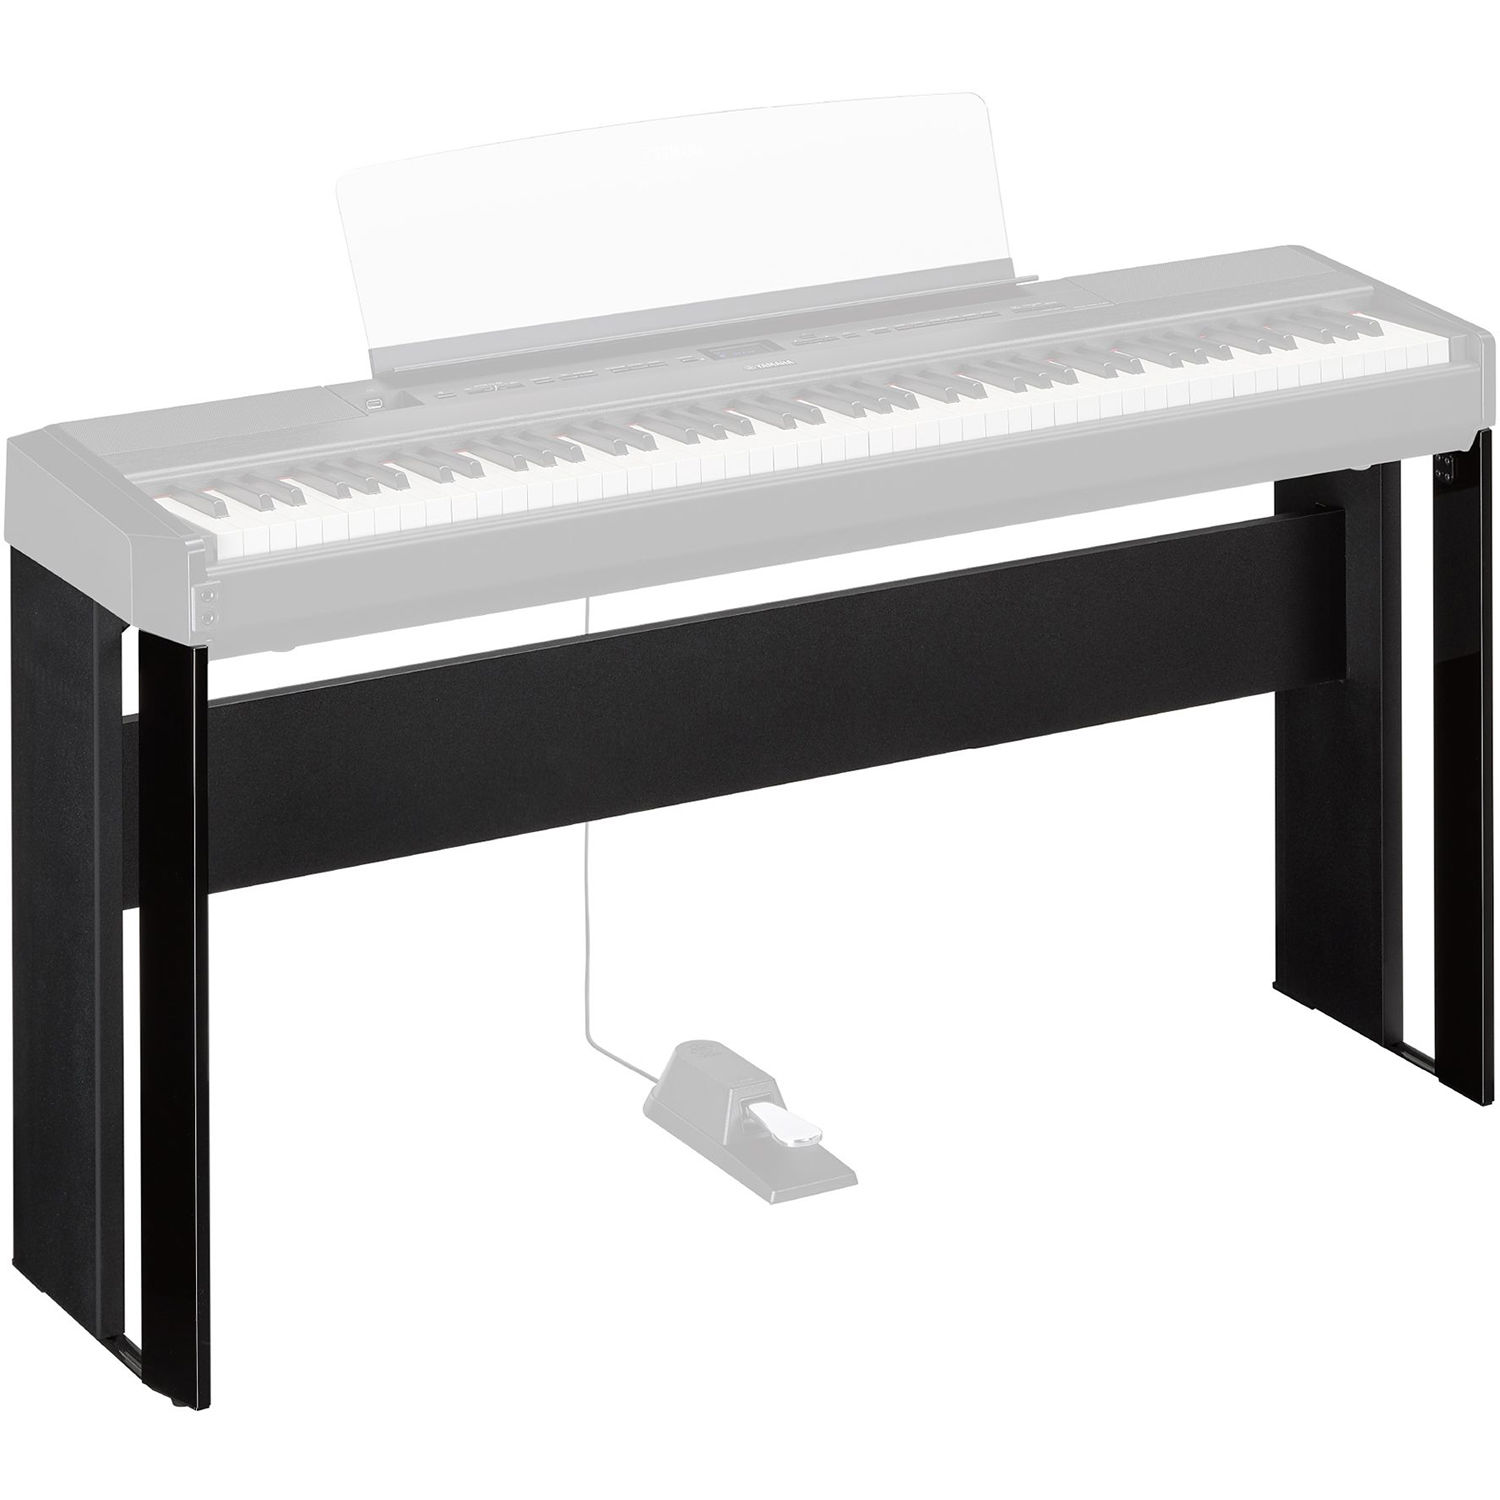 yamaha l515 matching wood stand for p 515 piano black l515b. Black Bedroom Furniture Sets. Home Design Ideas